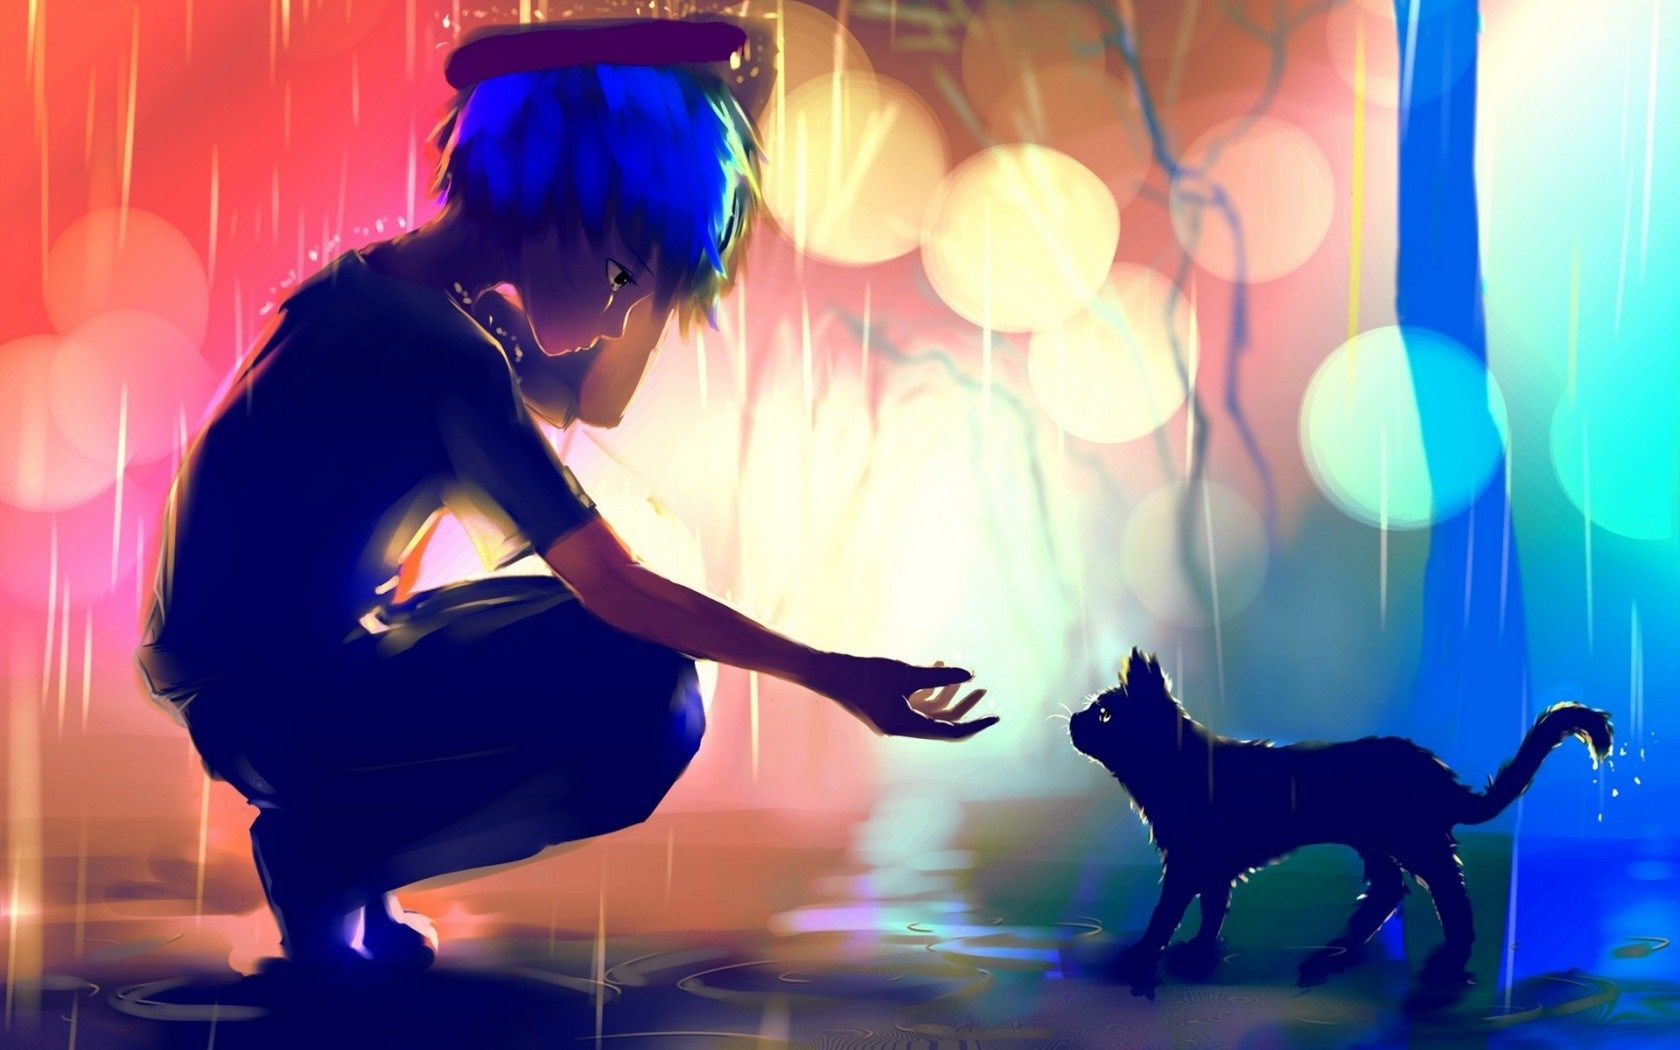 Anime Boy With Cat 3d Wallpaper Images Full Hd 8881 Wallpaper Anime Scenery Hd Anime Wallpapers Anime Boy